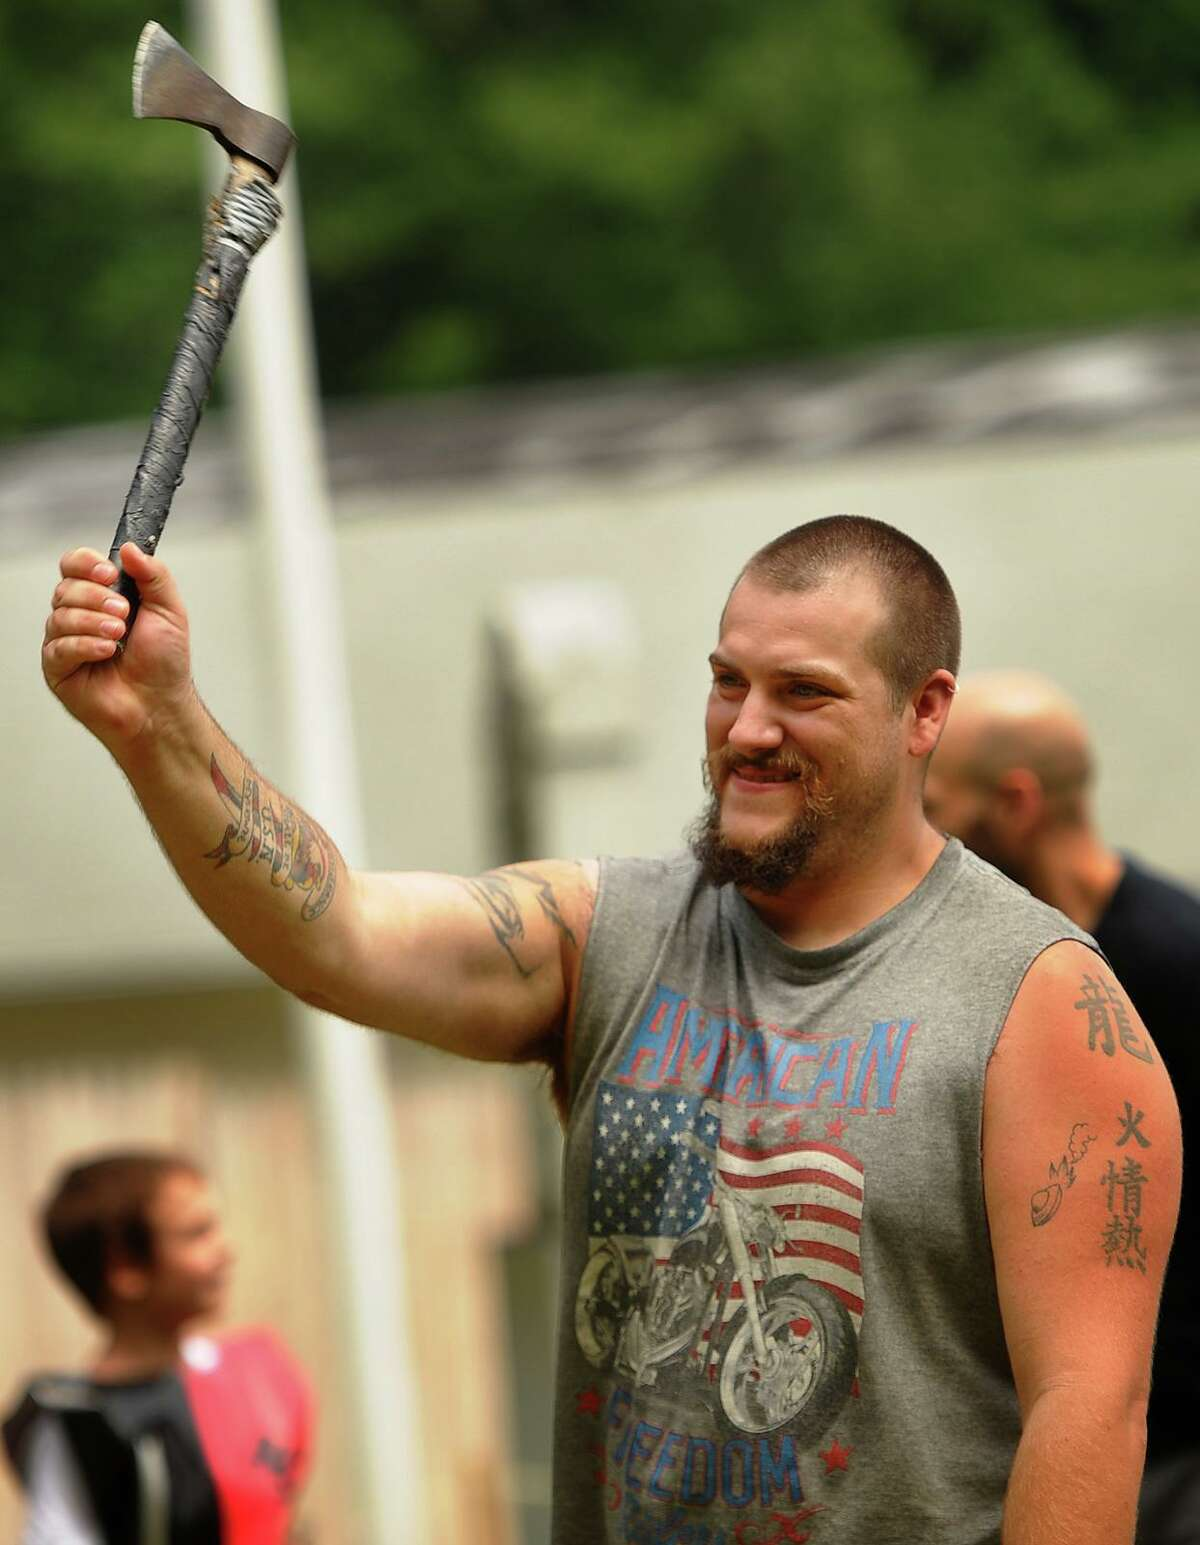 Joshua Patrick, of Ansonia, tries his hand at axe throwing at the annual Midsummer Fantasy Renaissance Faire at Warsaw Park in Ansonia in 2018.